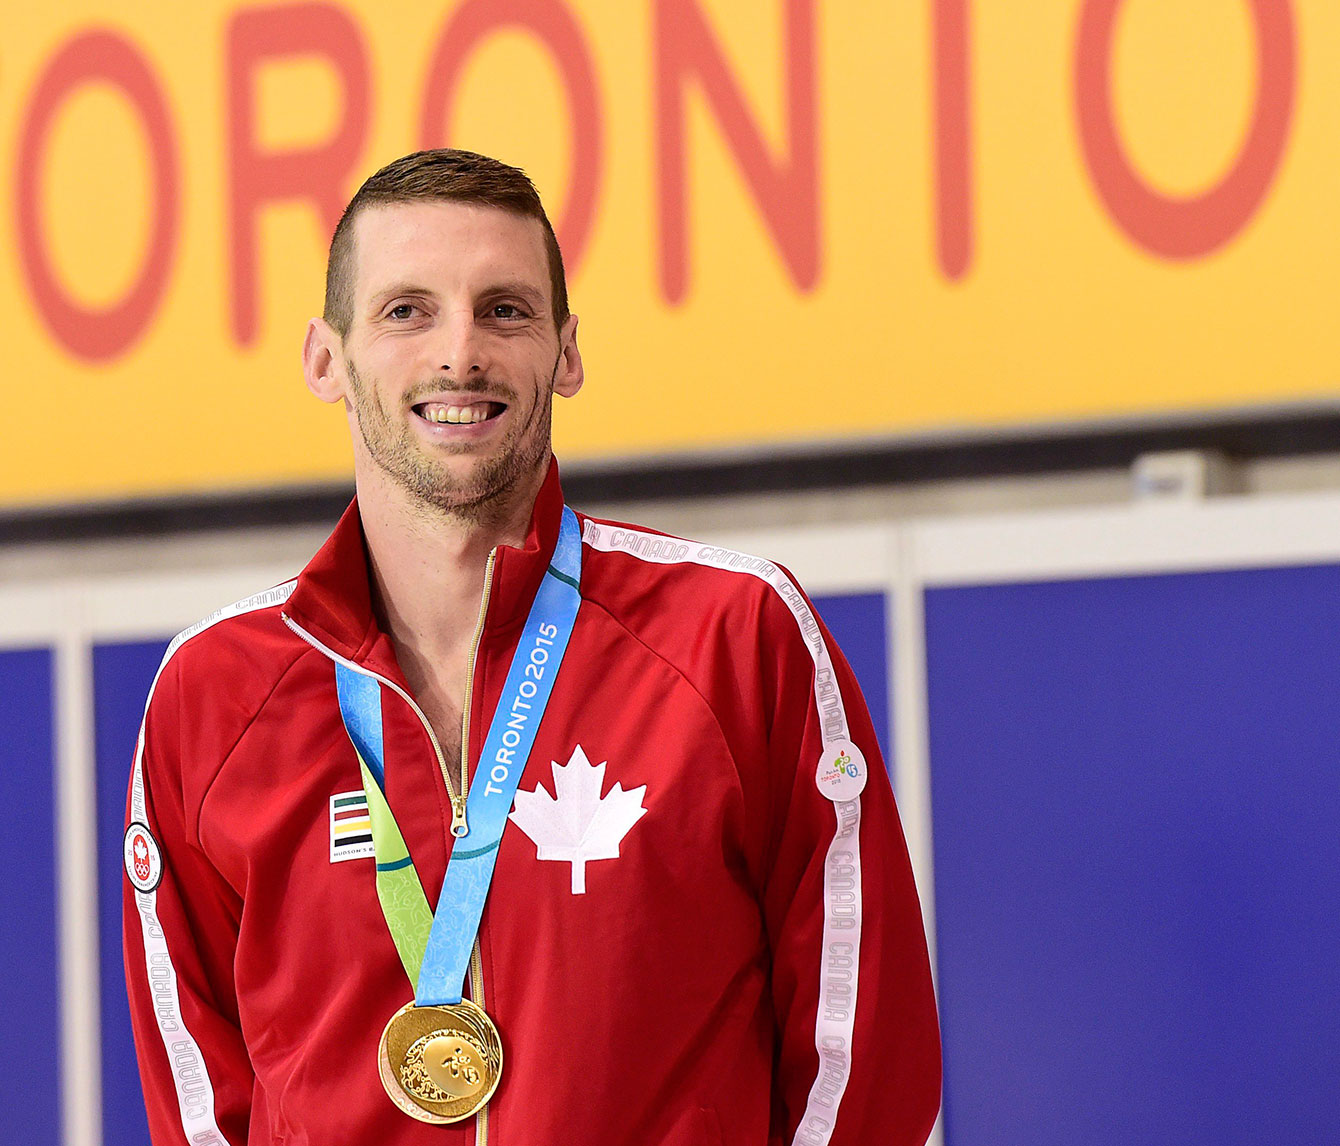 Ryan Cochrane smiles after receiving his Pan Am gold medal in the 400m freestyle, he also won the 1500m freestyle.